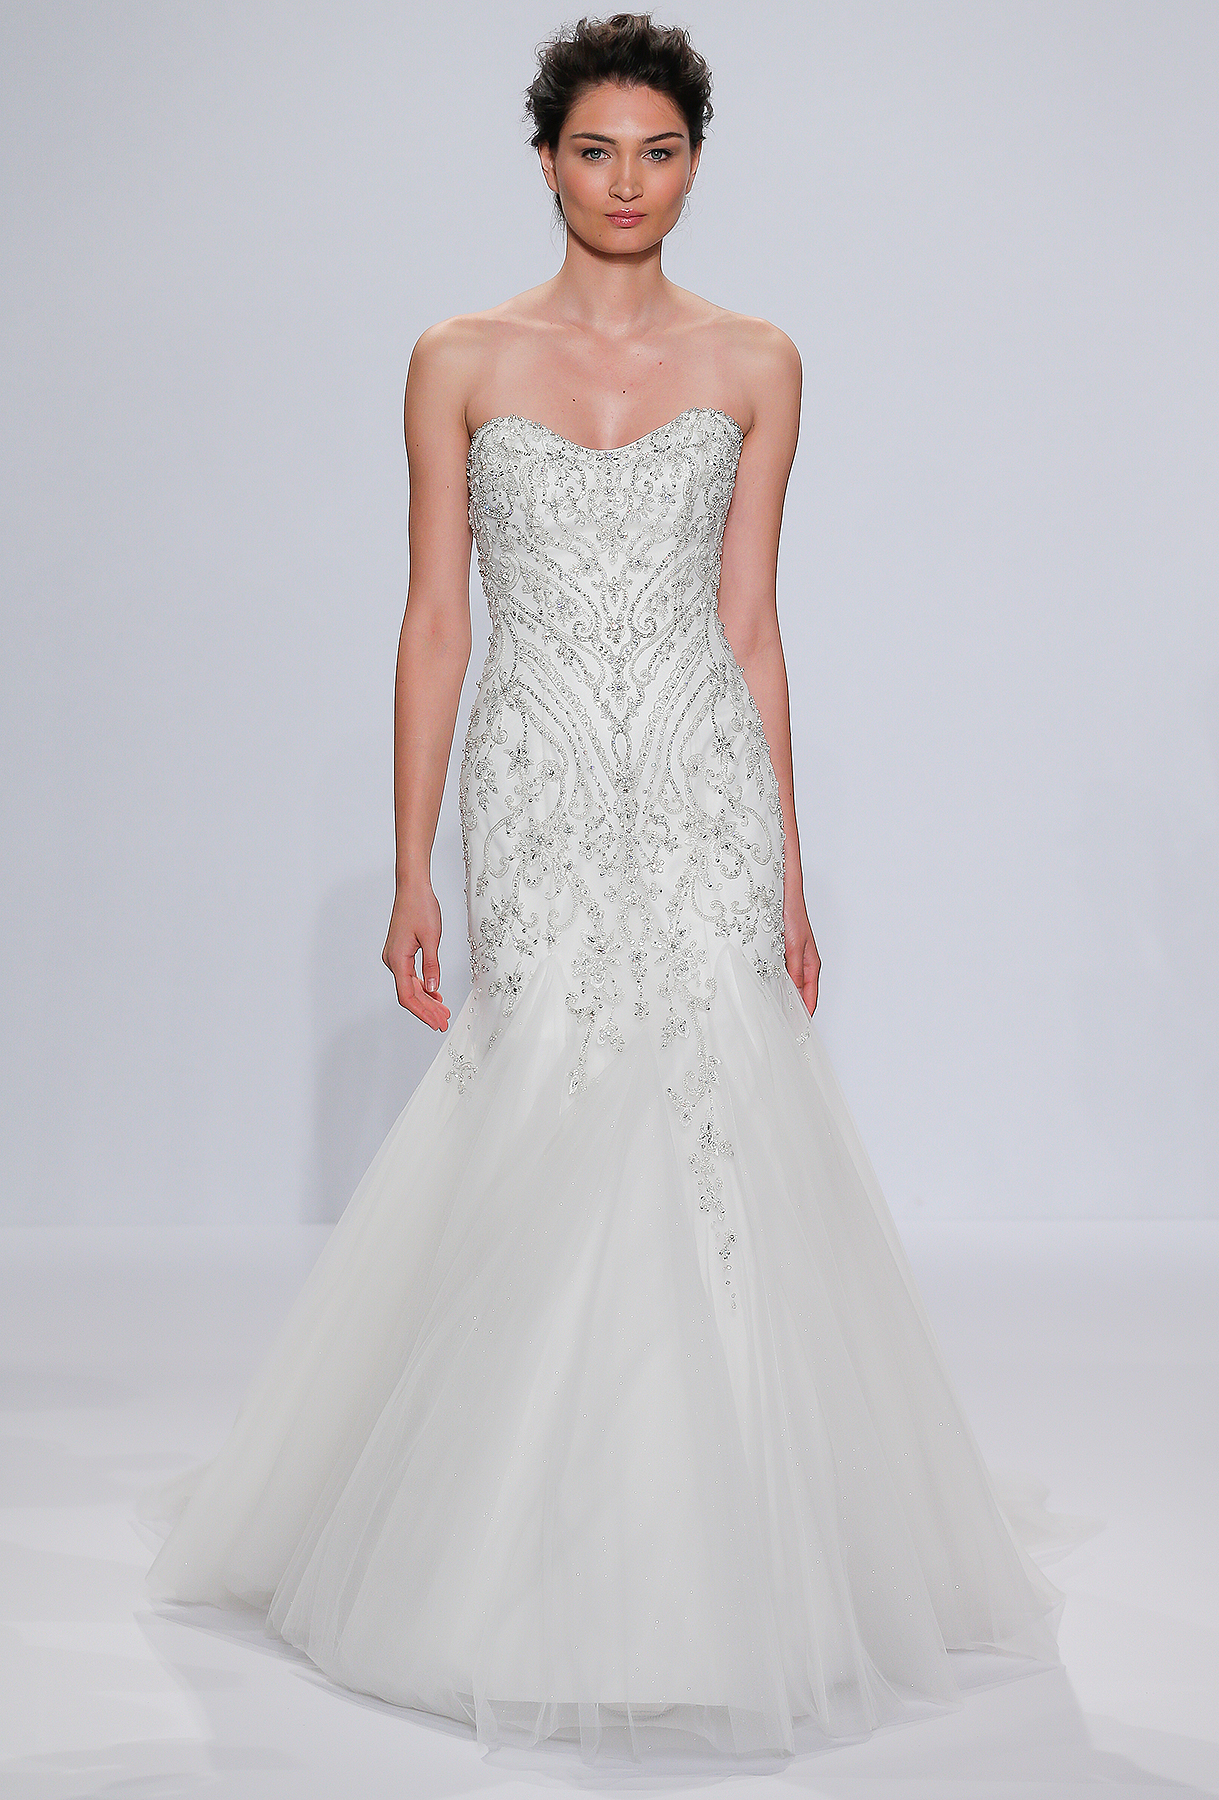 Randy Fenoli CollectionRandy Fenoli Collection